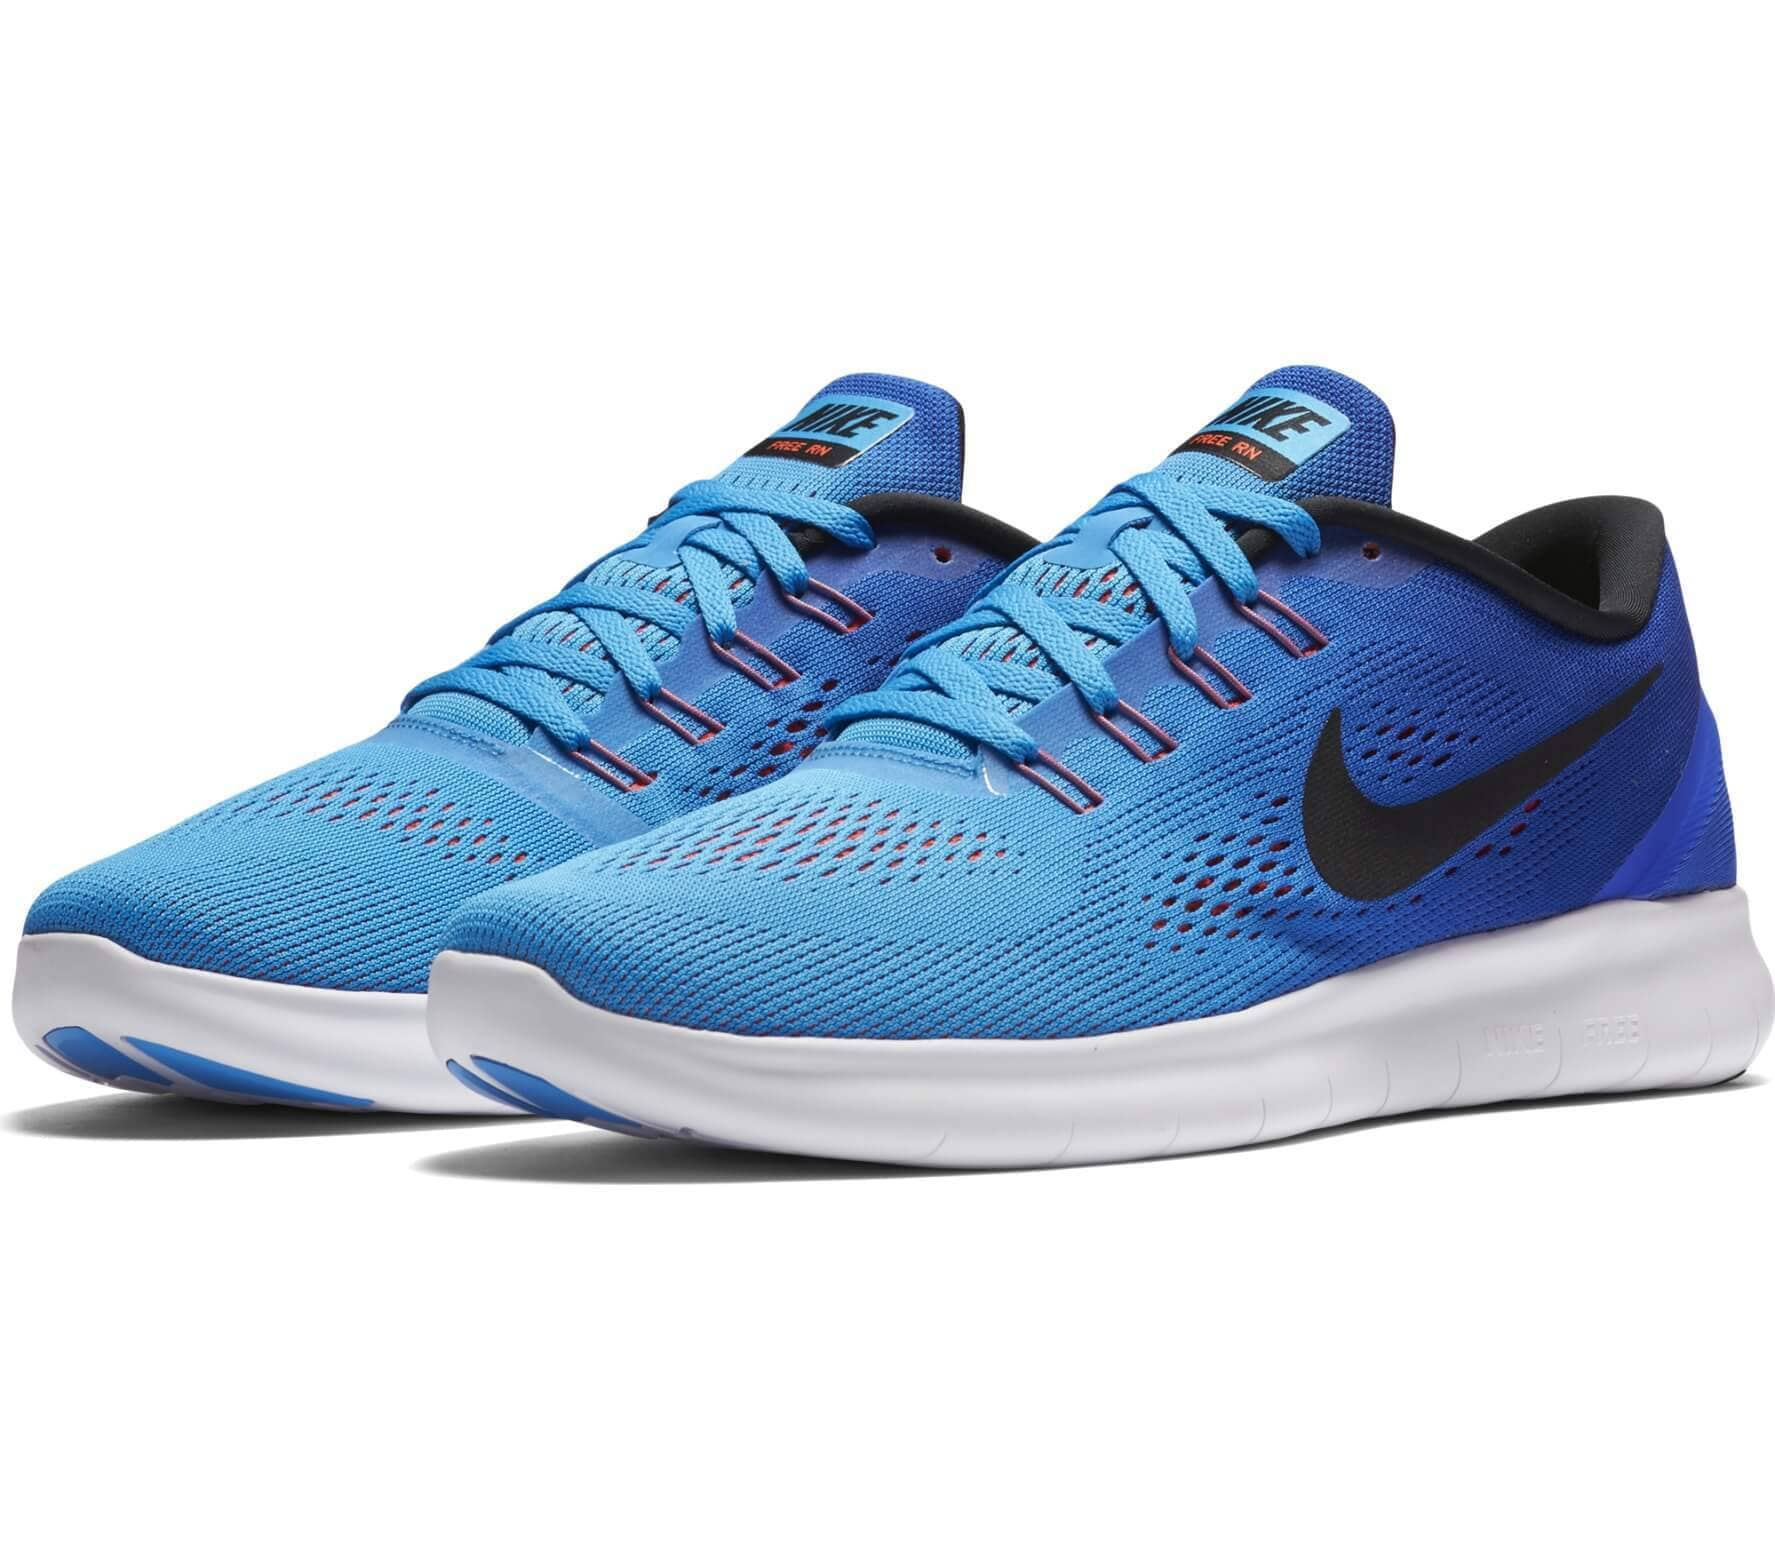 finest selection ae69d f52f7 ... shopping nike free rn hombre zapatos para correr azul oscuro azul claro  19683 f8daf